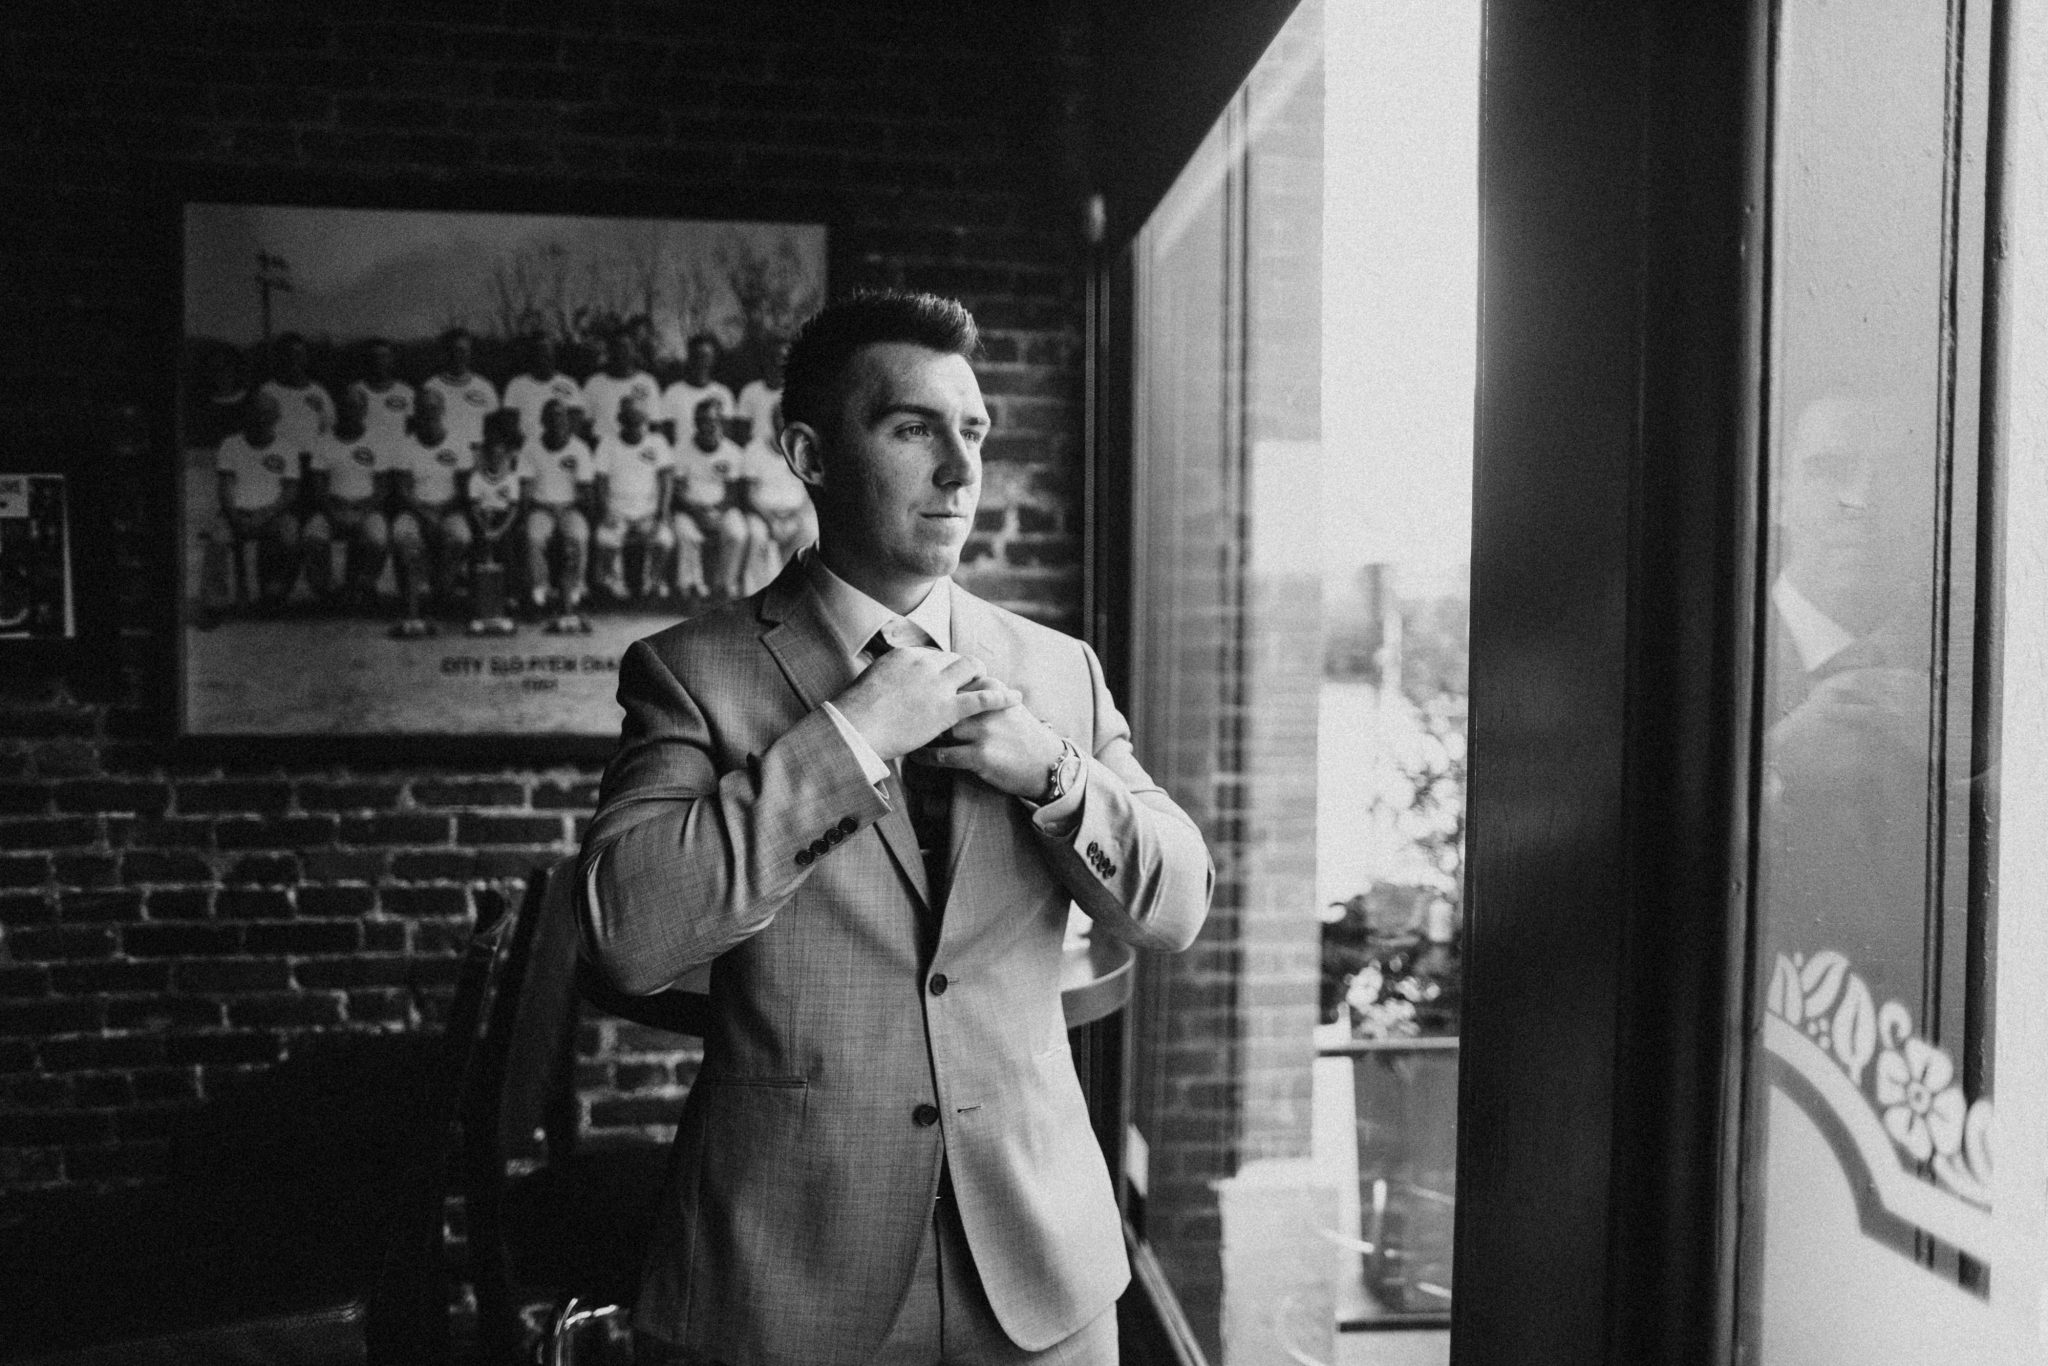 groom in bar, groomsmen attire indoor groom portraits, groom portraits in bar, groom in grey suit, groom style inspiration, philadelphia documentary wedding photographer, groom getting ready photos, urban groom, Brooklyn groom style, Brooklyn wedding photography, Brooklyn wedding, Philadelphia wedding photographer, Philadelphia wedding, Brooklyn new york photographer, unique wedding inspiration, fun wedding photos, romantic wedding, destination wedding photographer, wedding photography inspiration, destination wedding inspiration, city wedding ideas